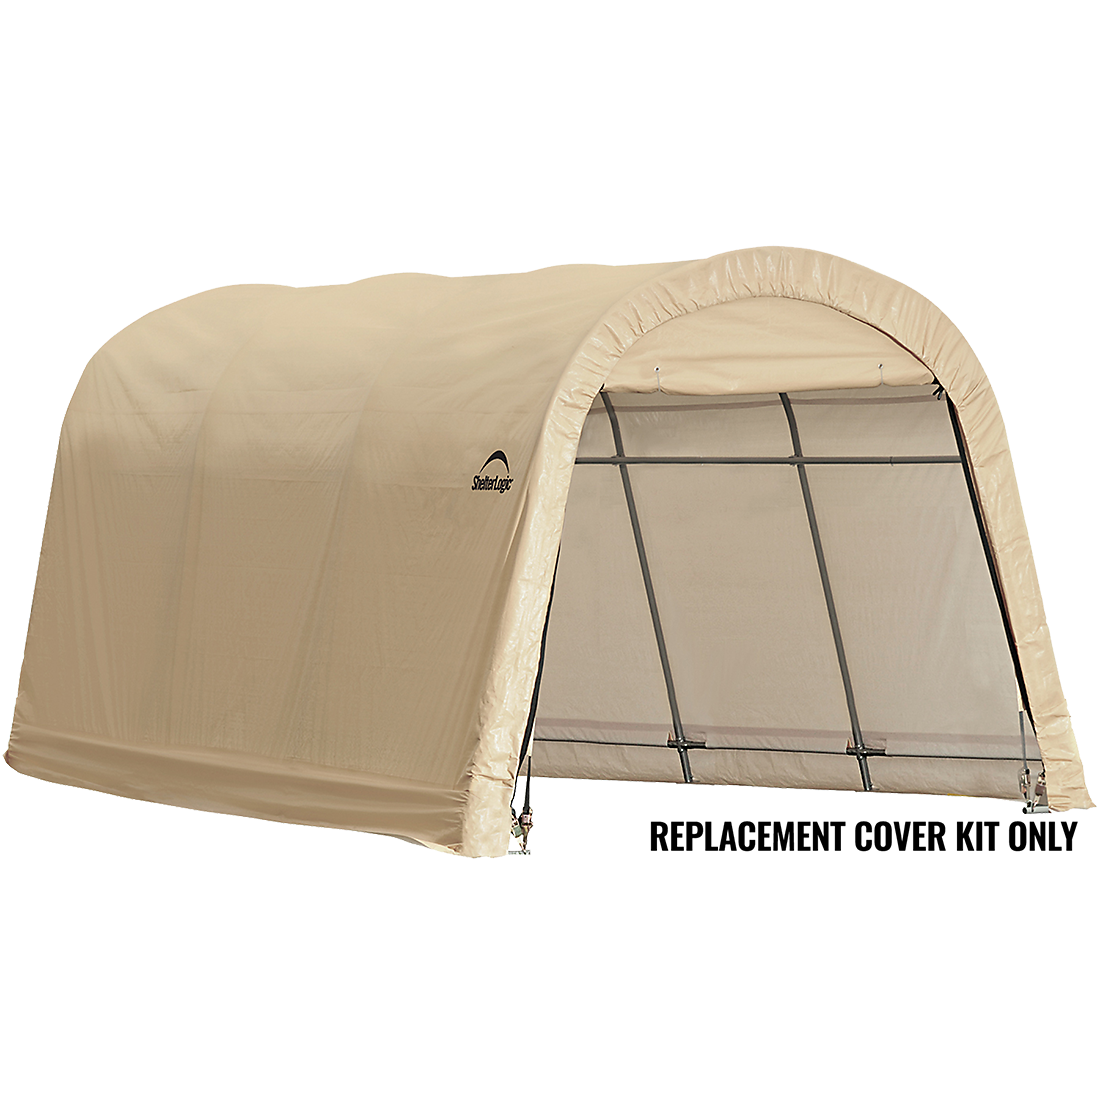 Replacement Cover Kit for the AutoShelter RoundTop® 10 x 15 x 8 ft.